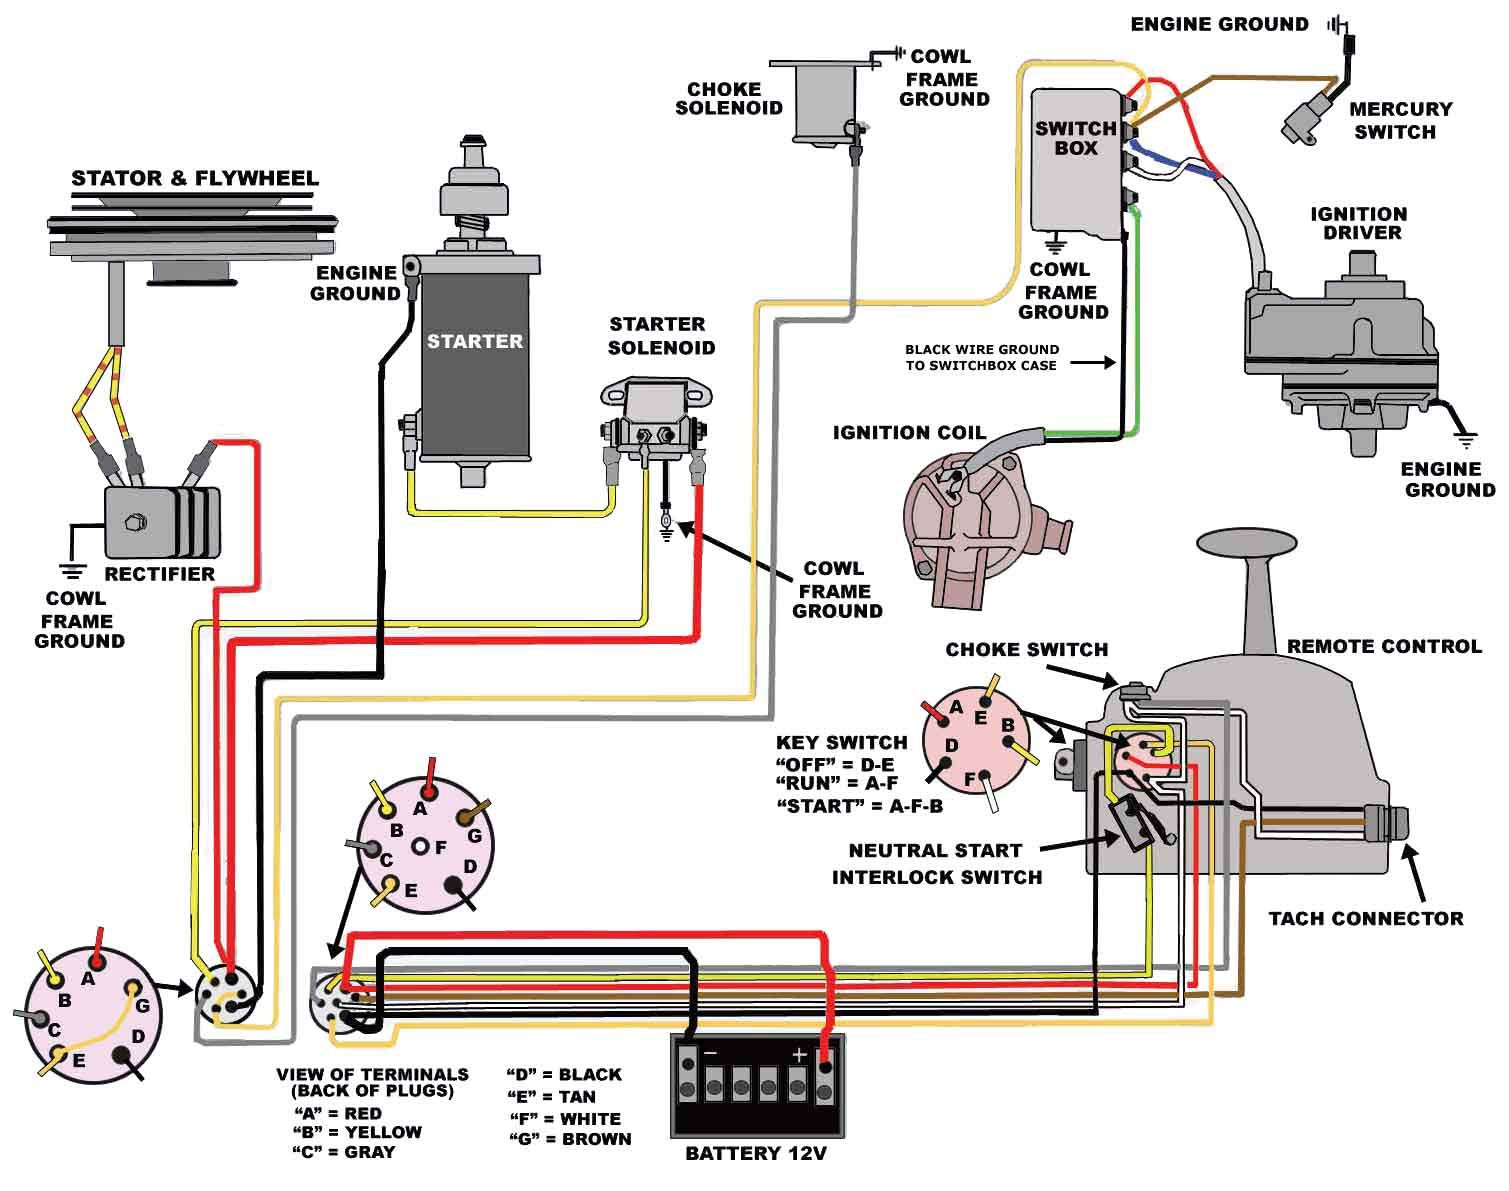 13cfb2d962bcd0c03103625817b7d51d mercury outboard wiring diagram diagram pinterest mercury mercury wiring harness diagram at edmiracle.co